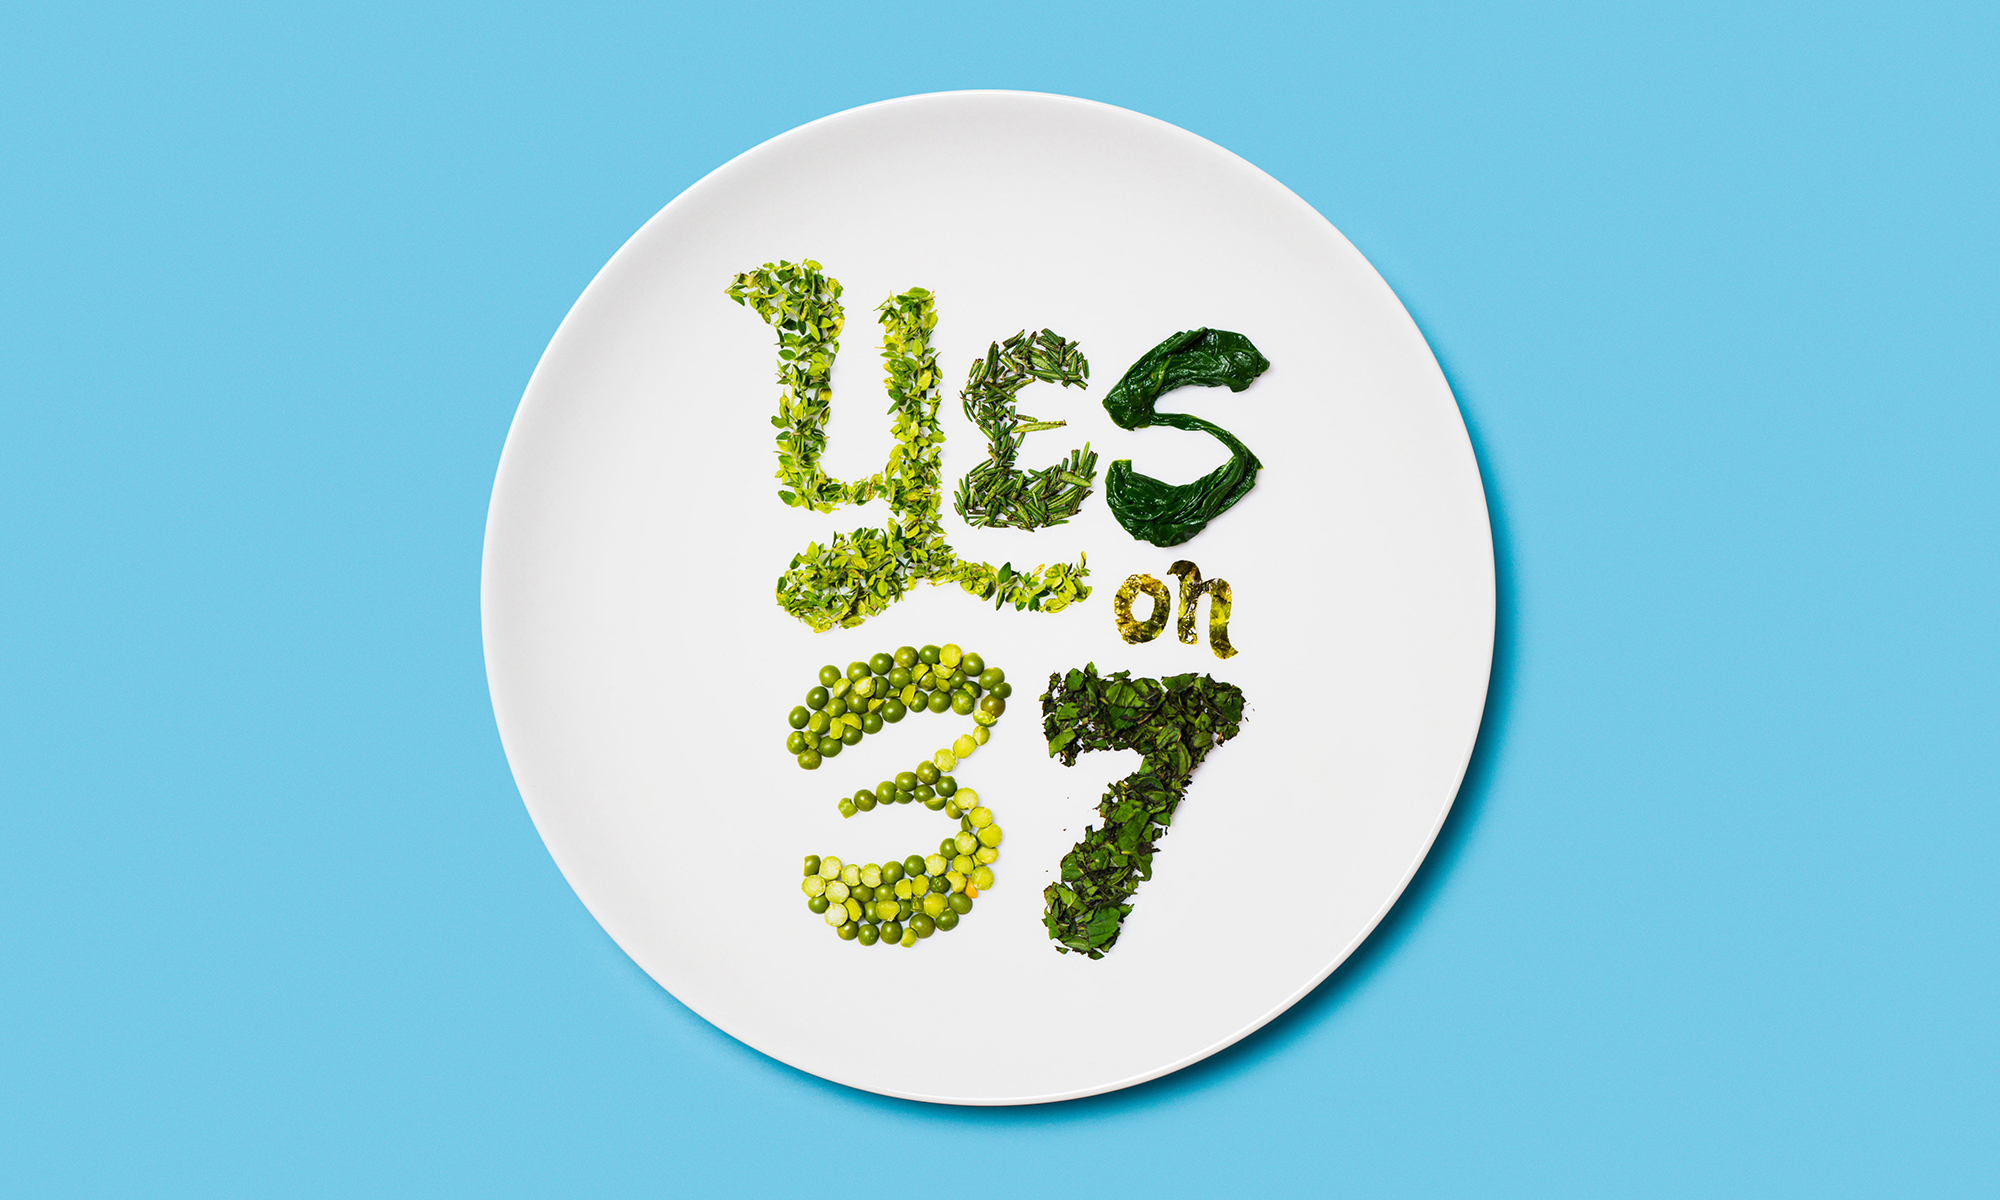 A title card for California's Prop 37 ballot initiative of 2012, encouraging a 'yes' vote for the labelling of genetically-engineered foods.